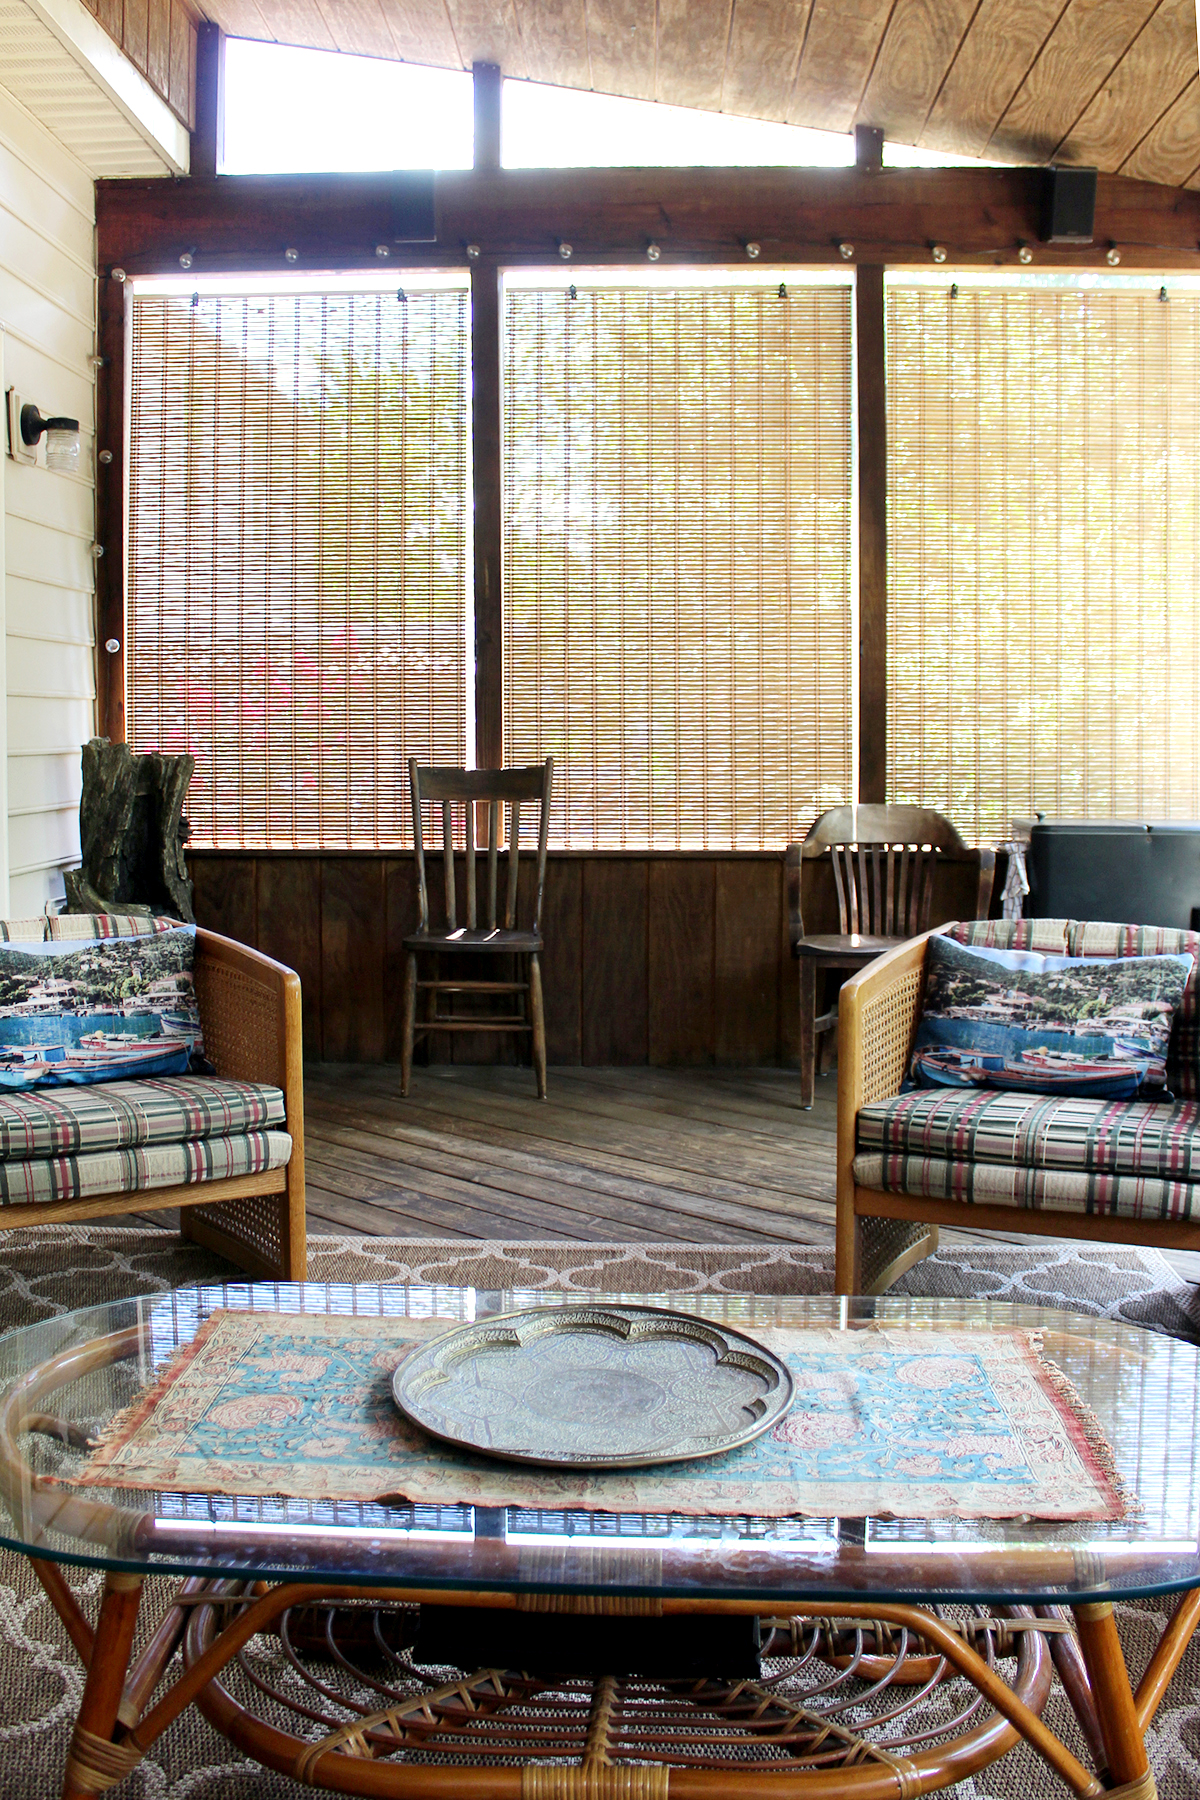 how to decorate a rustic screened porch with smart tech for under $400 #outdoordesign #screenedporch